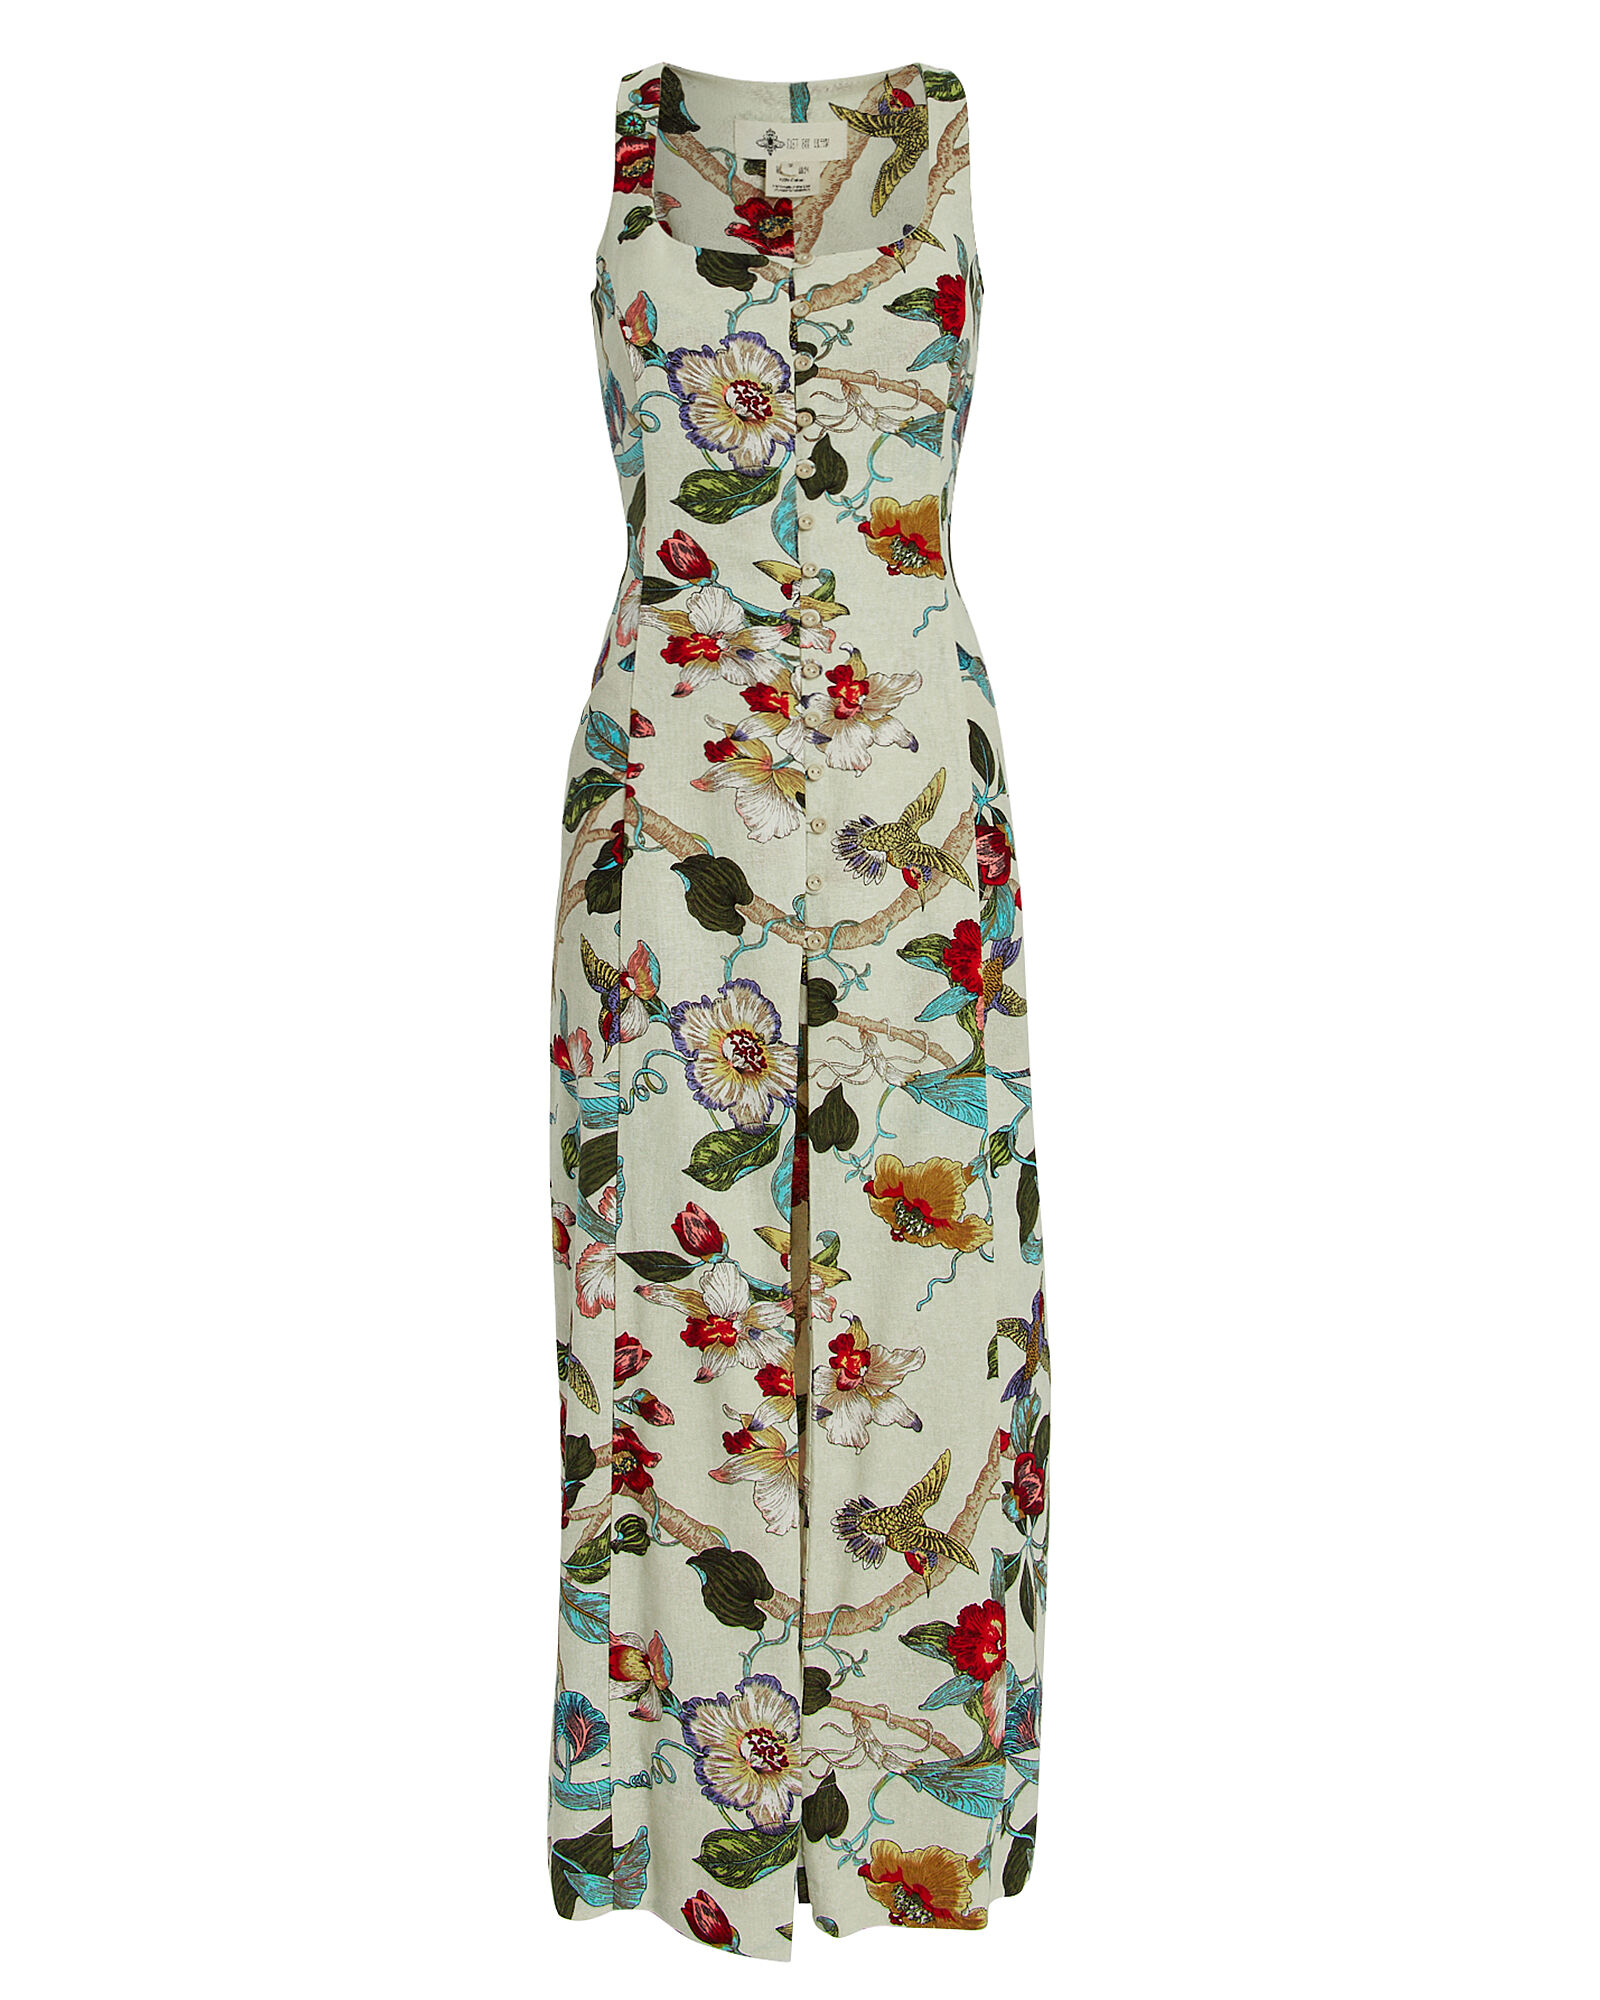 Catalina Floral Cotton Dress, BEIGE/FLORAL, hi-res